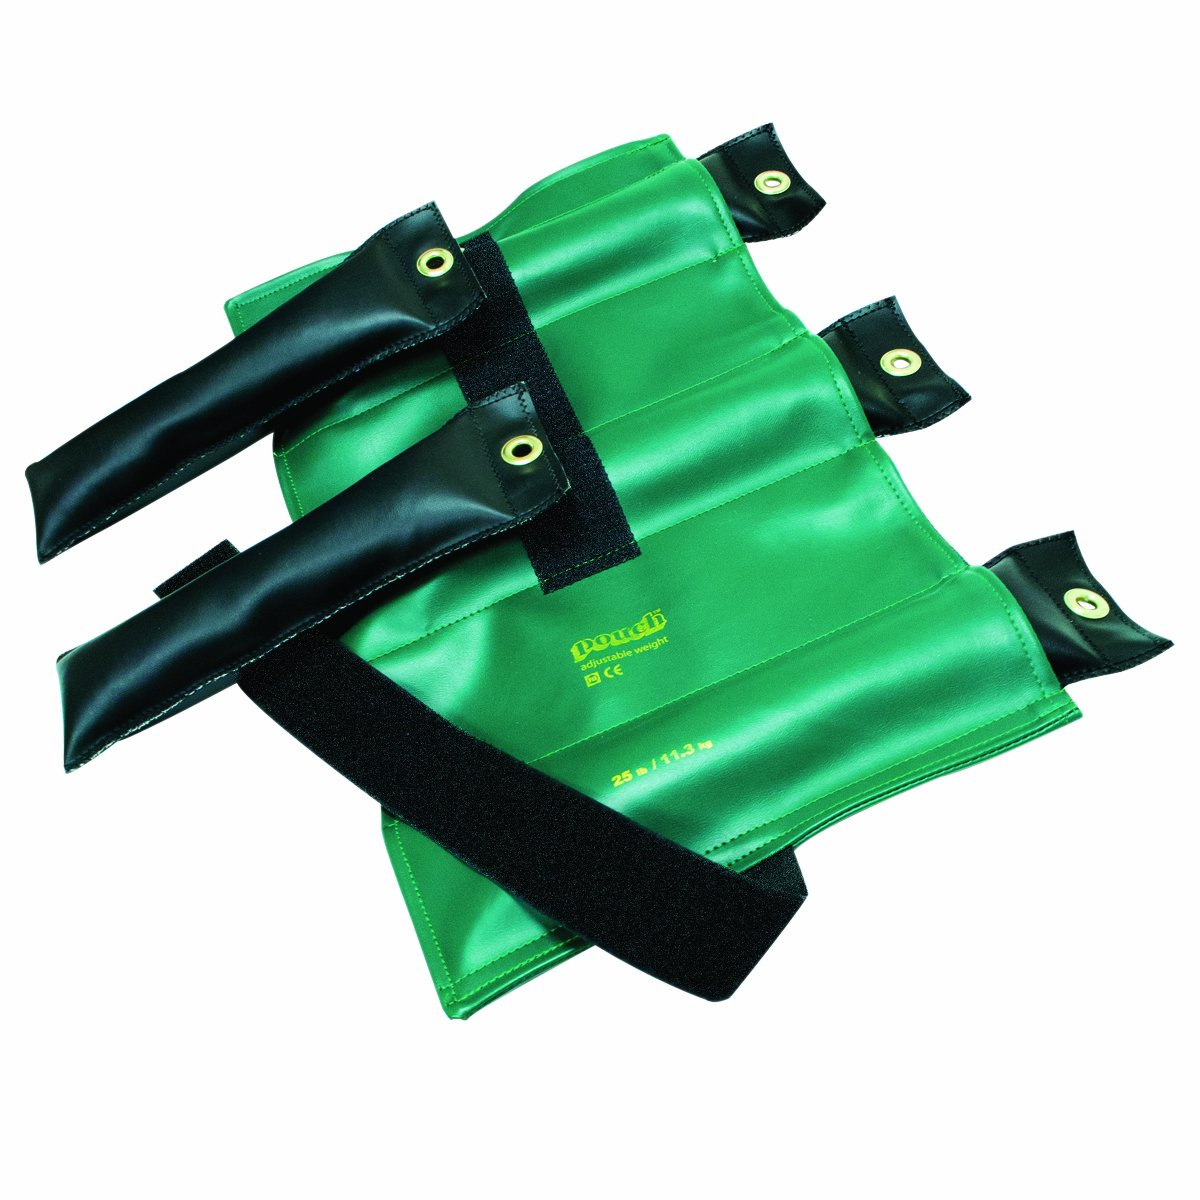 the Cuff 10-0305 Pouch Variable Wrist and Ankle Weight, 25 lb, 5 x 5 lb Inserts, Green